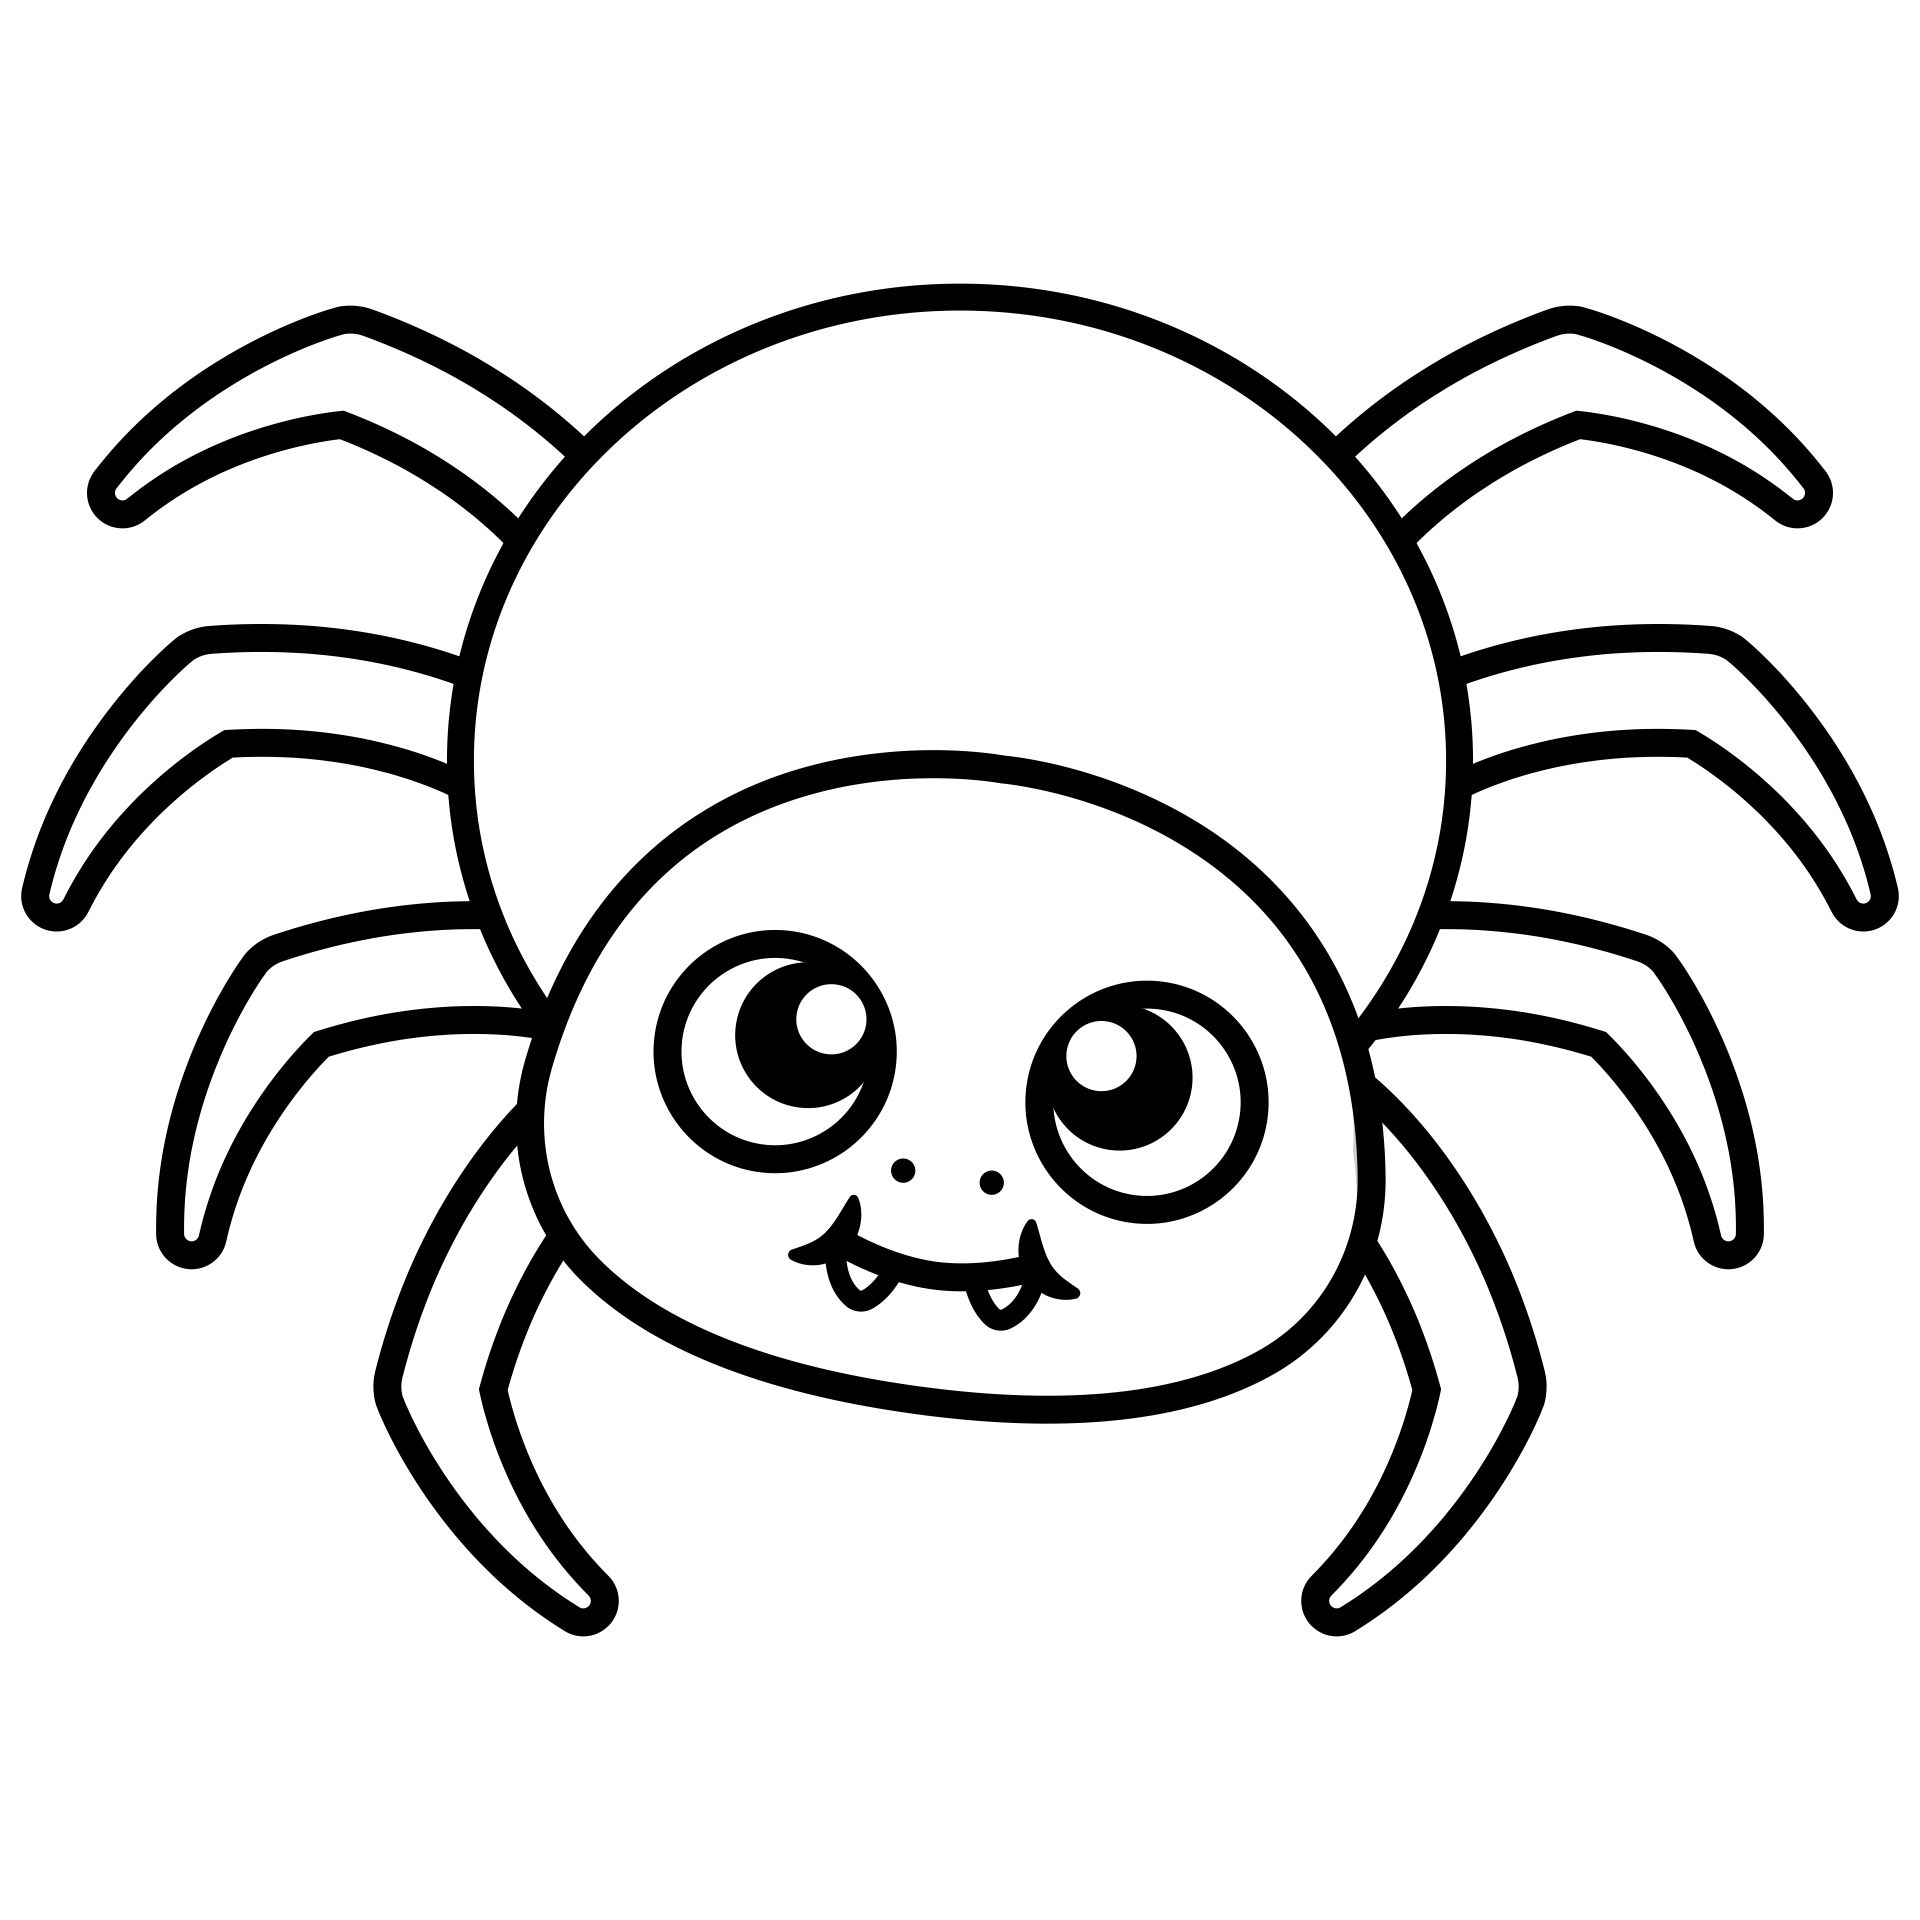 5 Best Printable Halloween Spider Coloring Pages